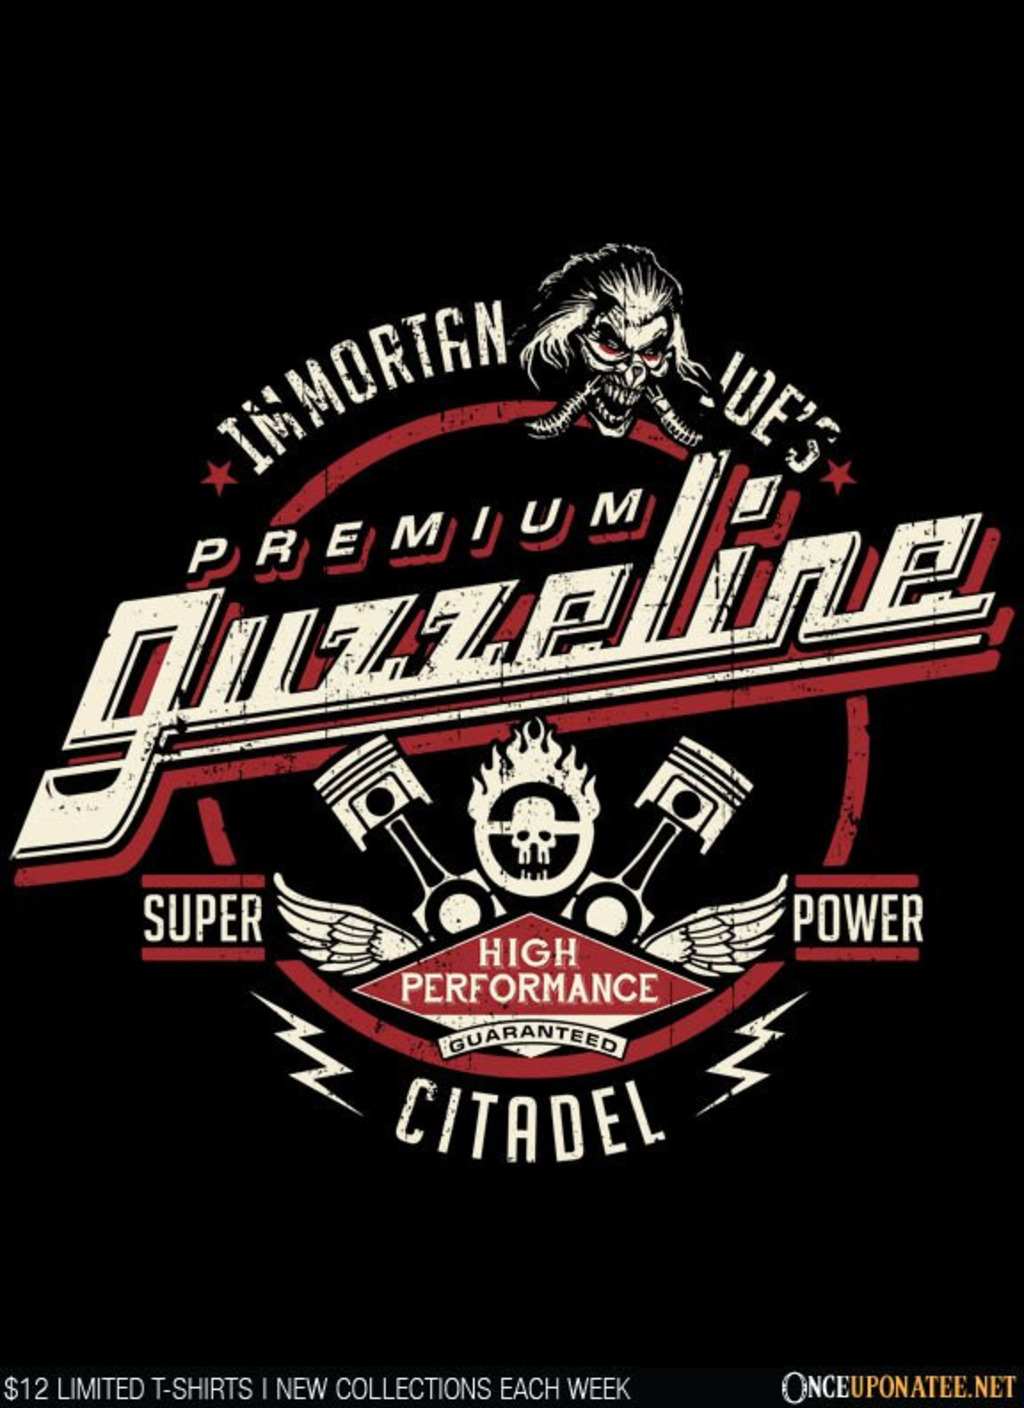 Once Upon a Tee: Joe's Premium Guzzeline